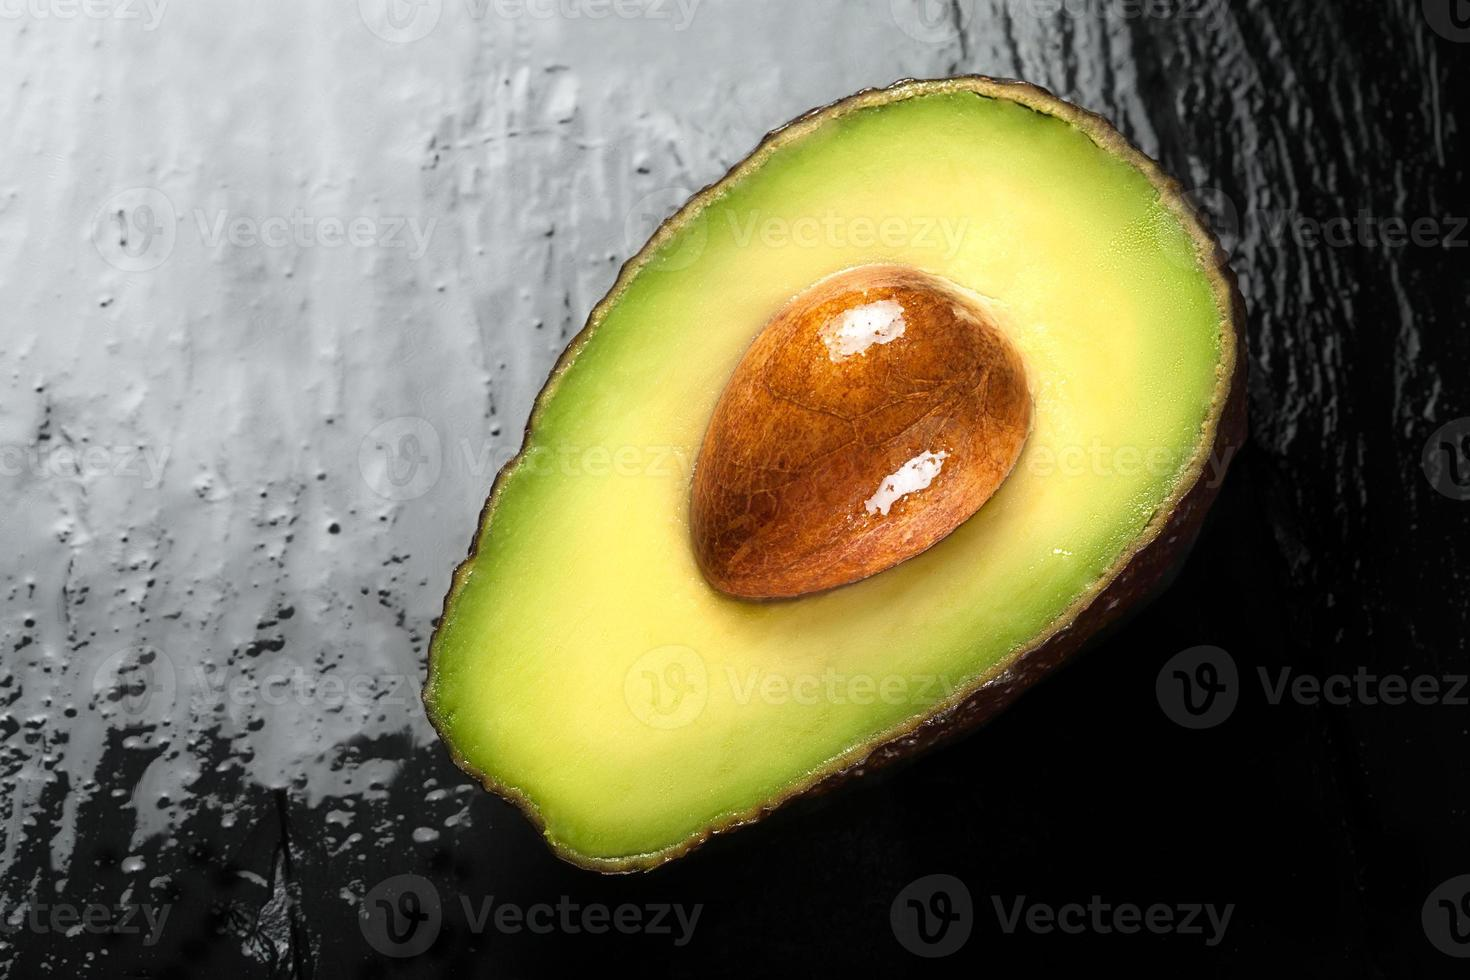 Top View of a Half Ripe Avocado. Clean Eating Concepts photo